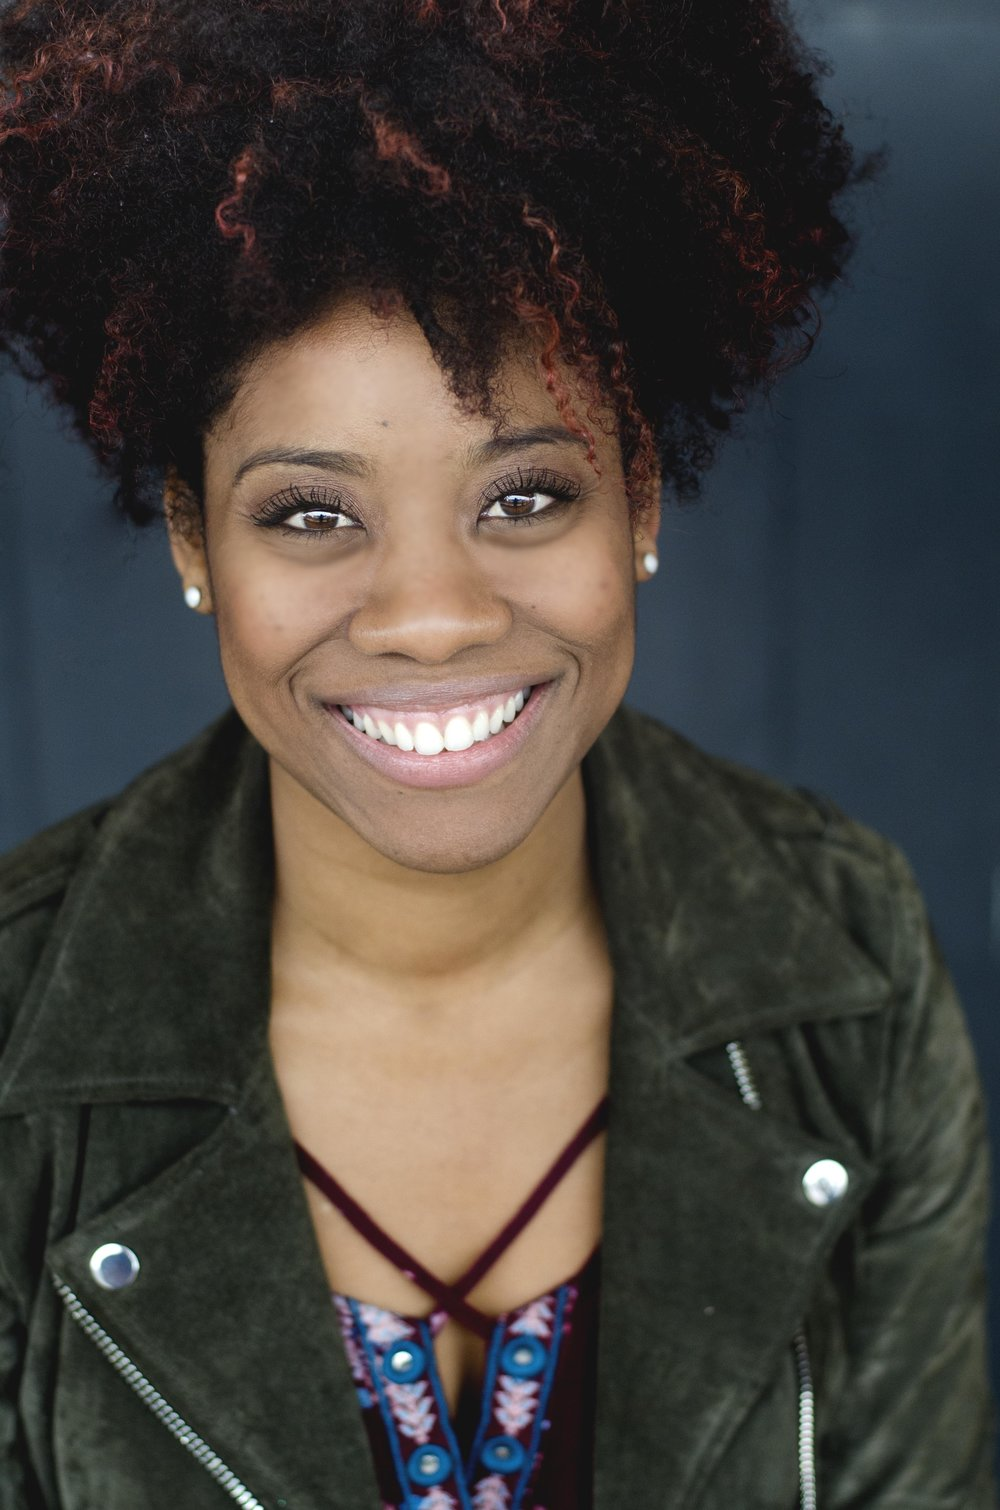 Candice D'Meza, founder of Candice Laine Productions, is an actor, author, speaker, host, and workshop creator based in Houston, TX and Los Angeles, CA. She has a B.A. and MPA from California State University, Long Beach. As a speaker, her topics include The Magic of Alchemy (Turning pain into peace) and The Power of Radical Self-Definition. Her editorial writing focuses on acceptance, mental health, acceptance, and art.    Her editorial writing focuses on acceptance, mental health, acceptance, and art.